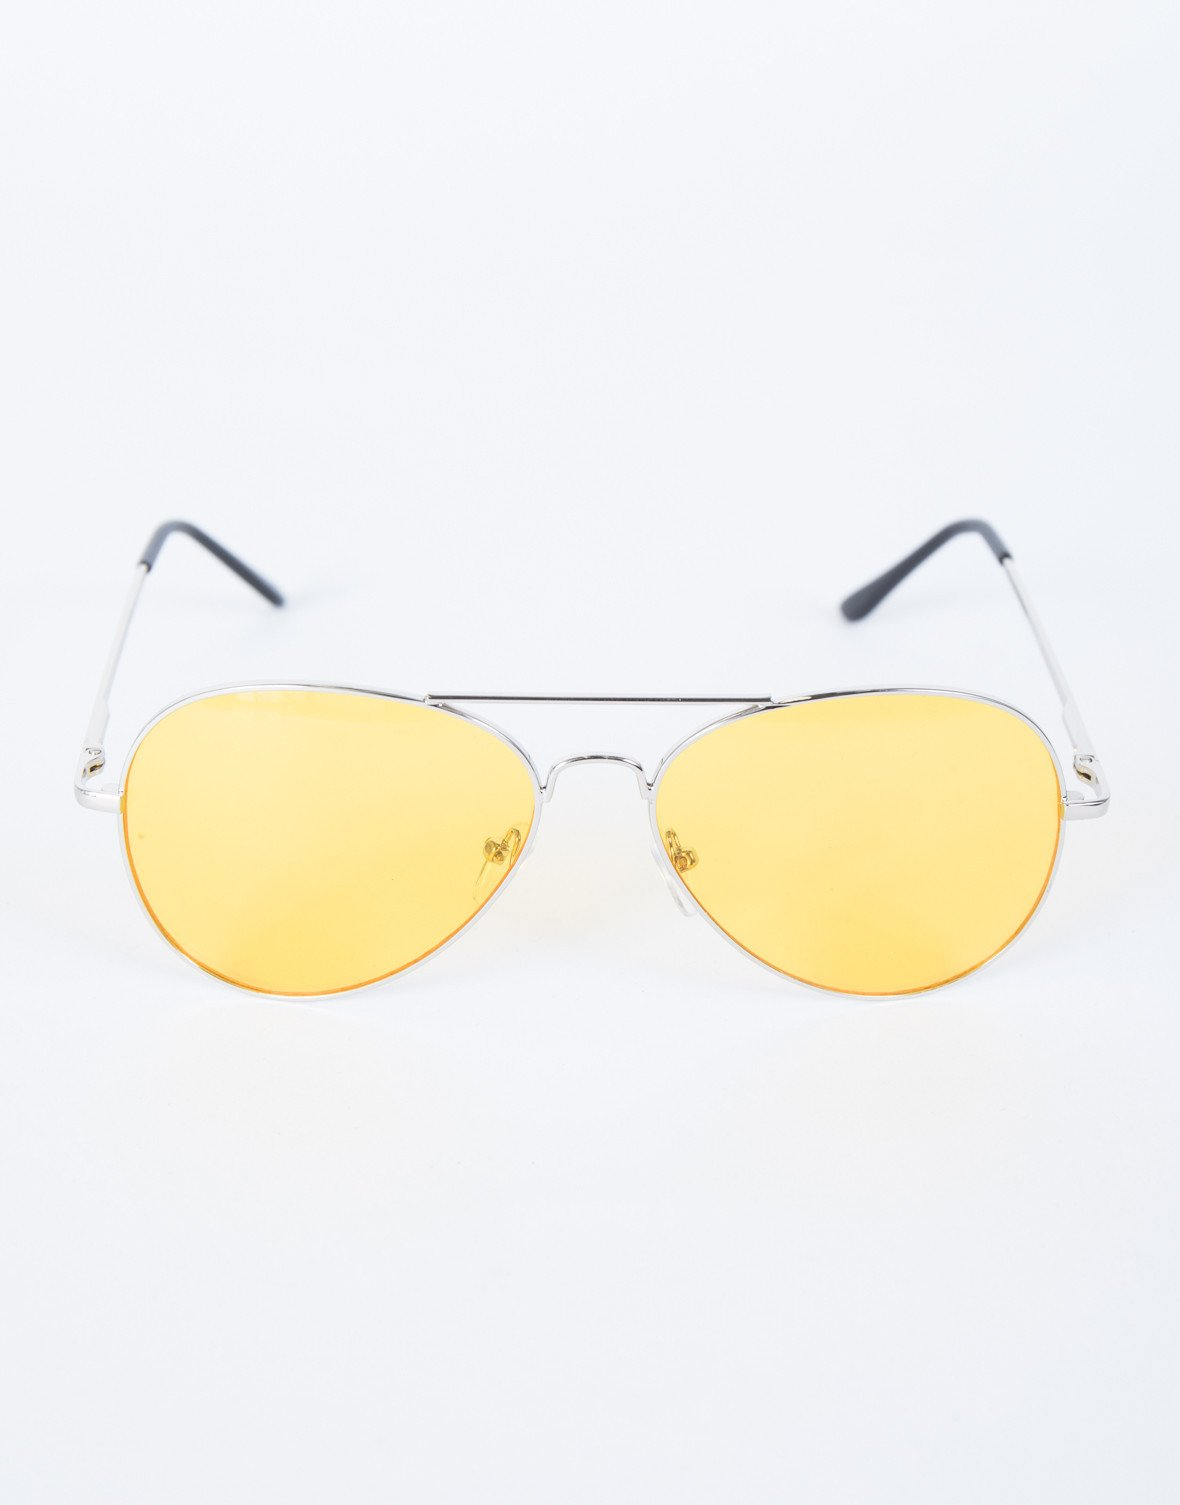 Yellow Warm Days Sunnies - Top View